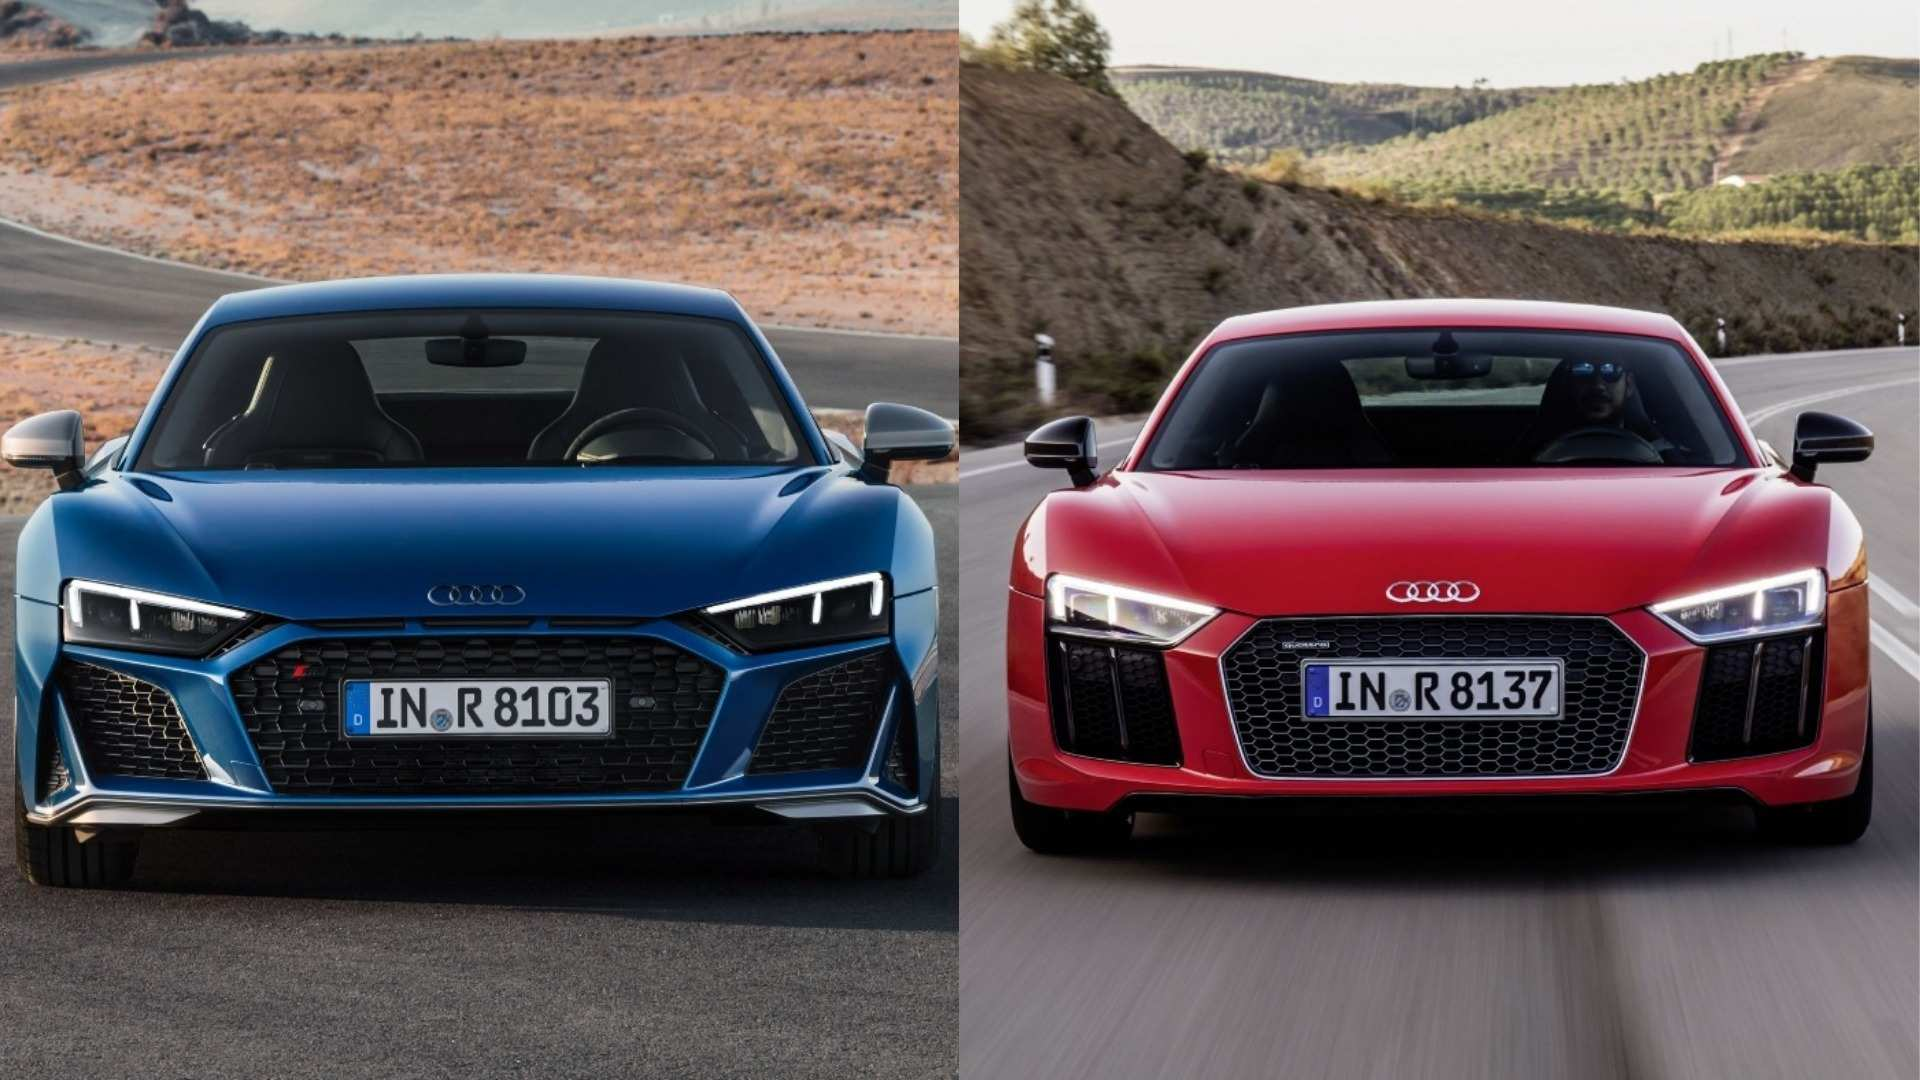 77 Best Review Pictures Of 2020 Audi R8 Exterior with Pictures Of 2020 Audi R8